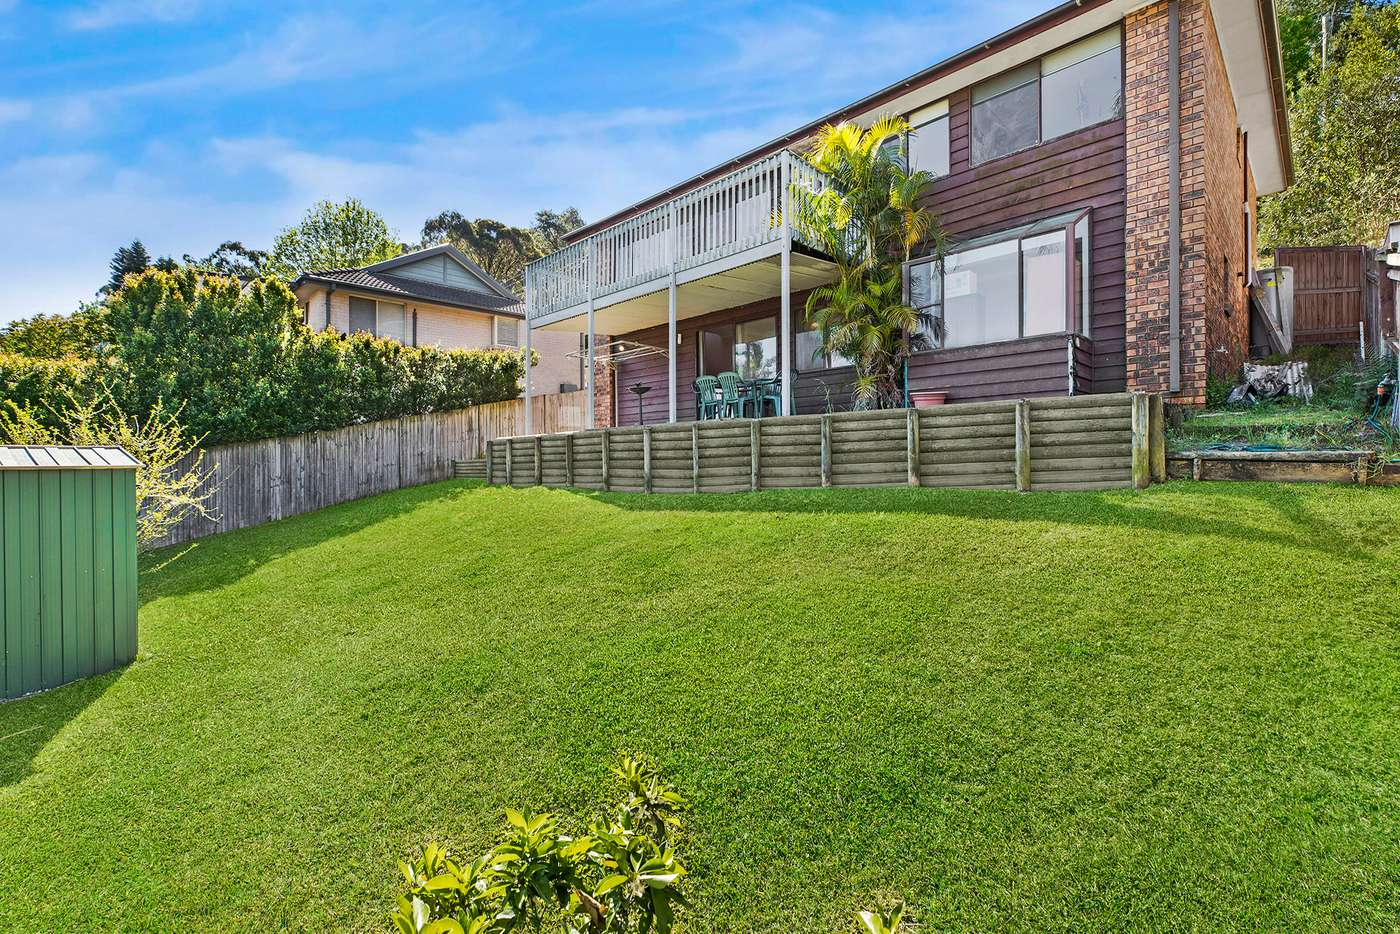 Main view of Homely house listing, 34 Treeview Place, Saratoga NSW 2251